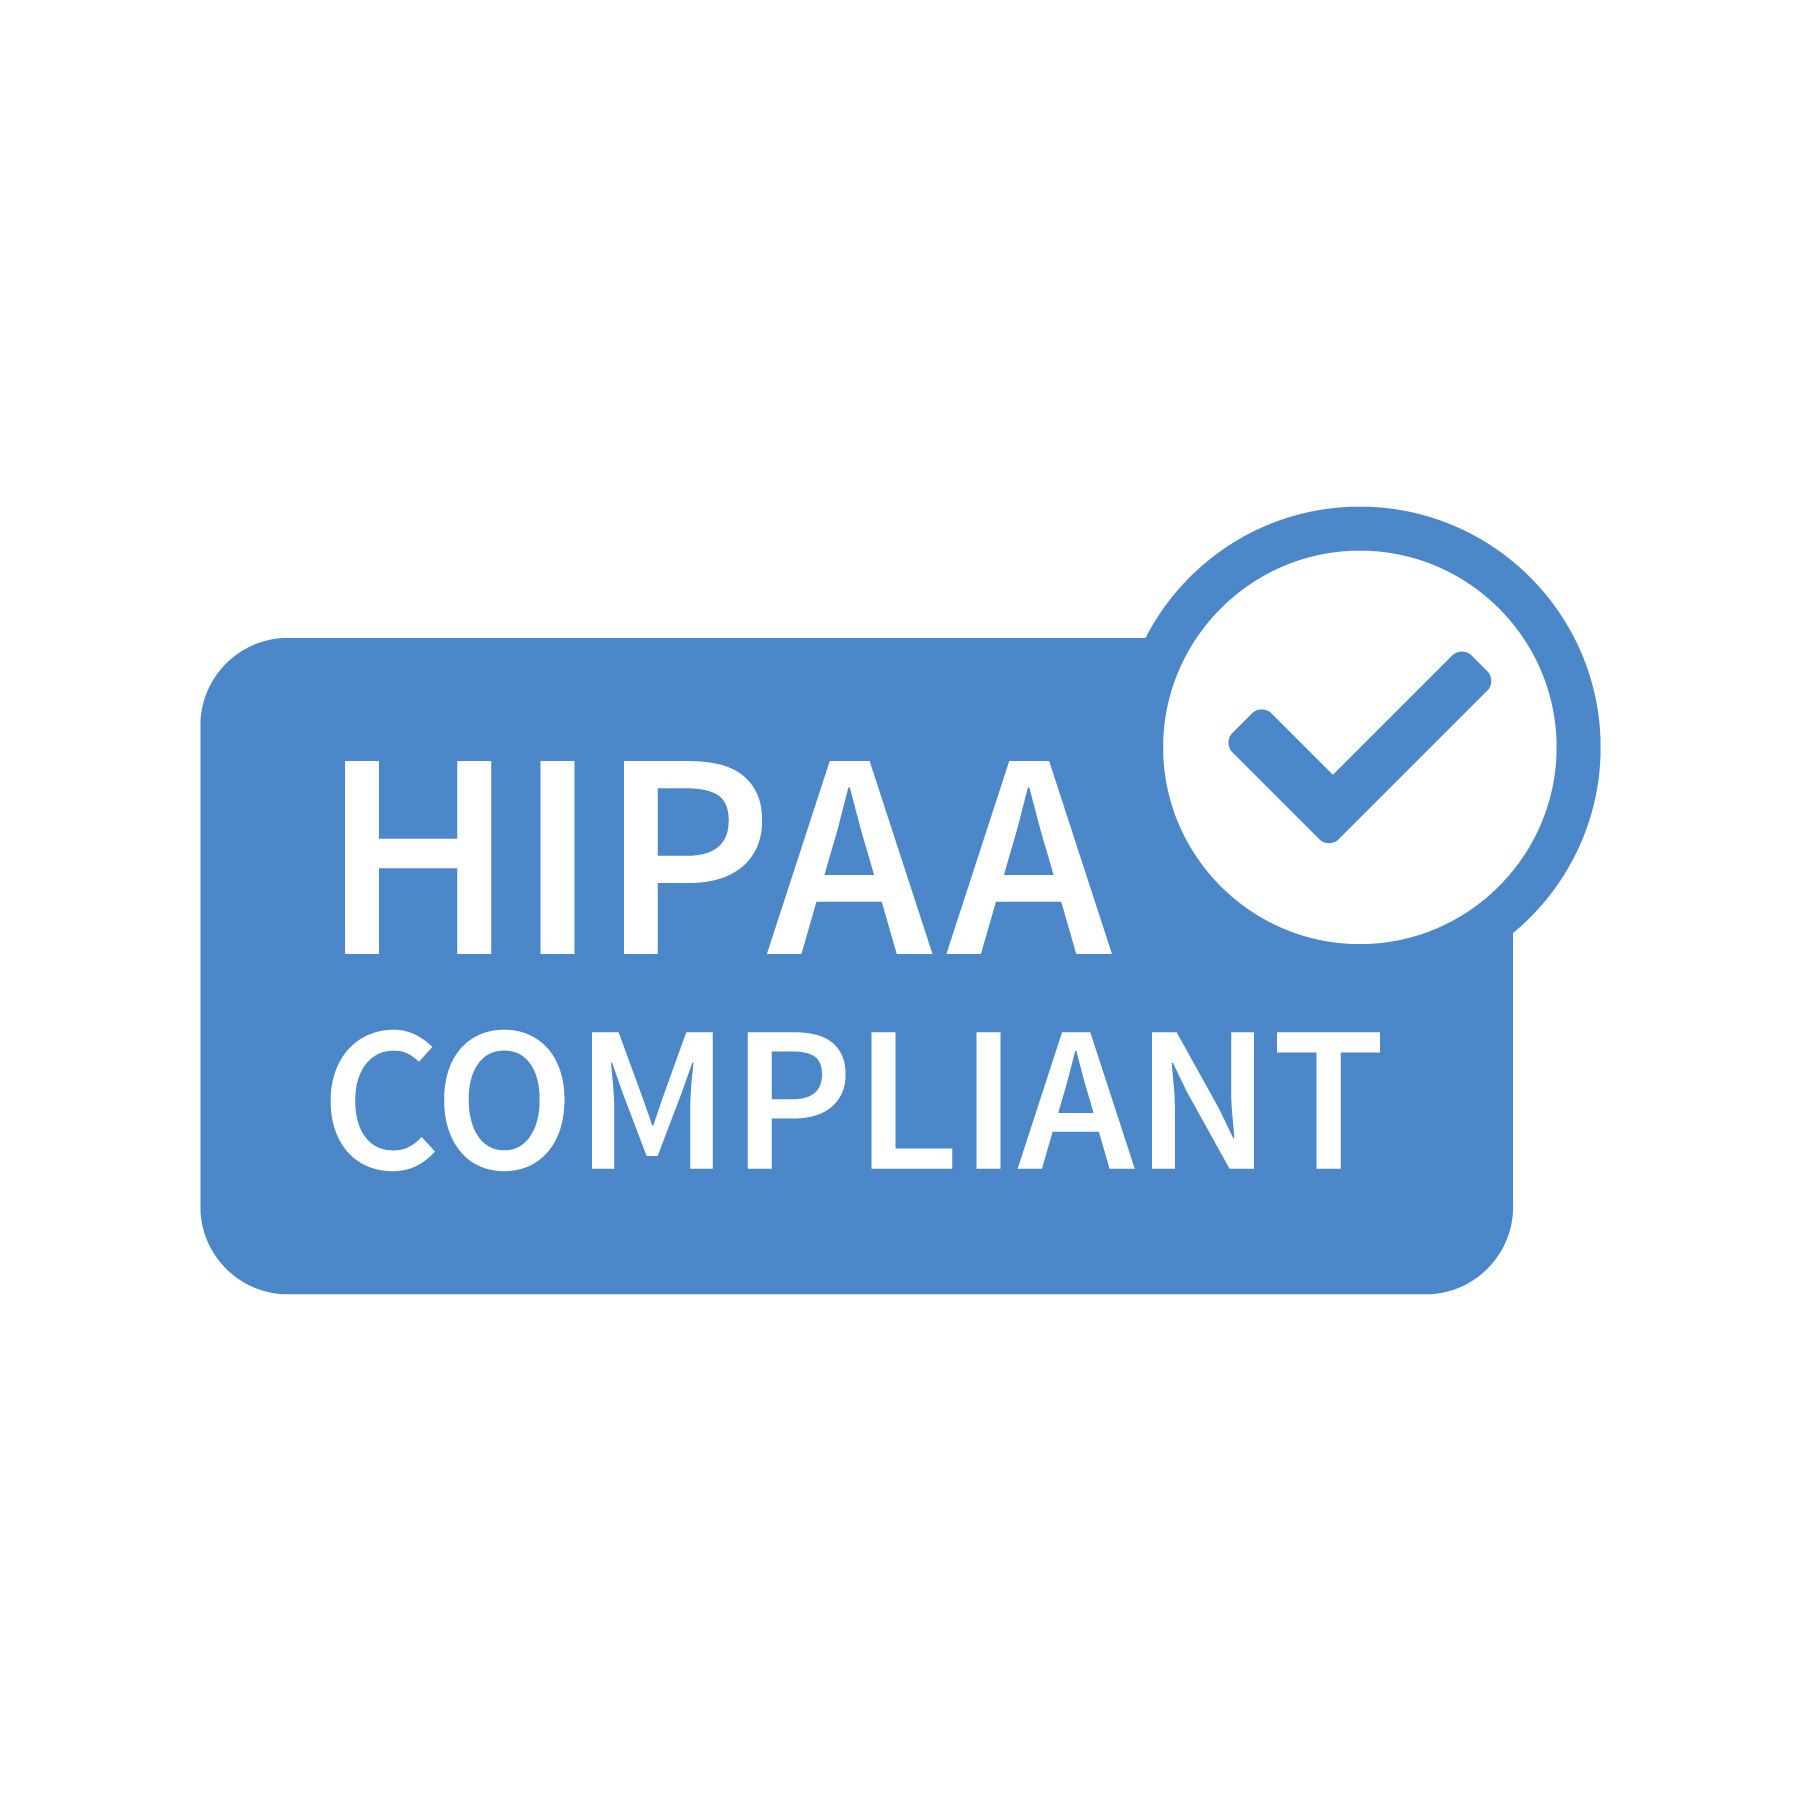 Achieving HIPAA Compliance with Document Management